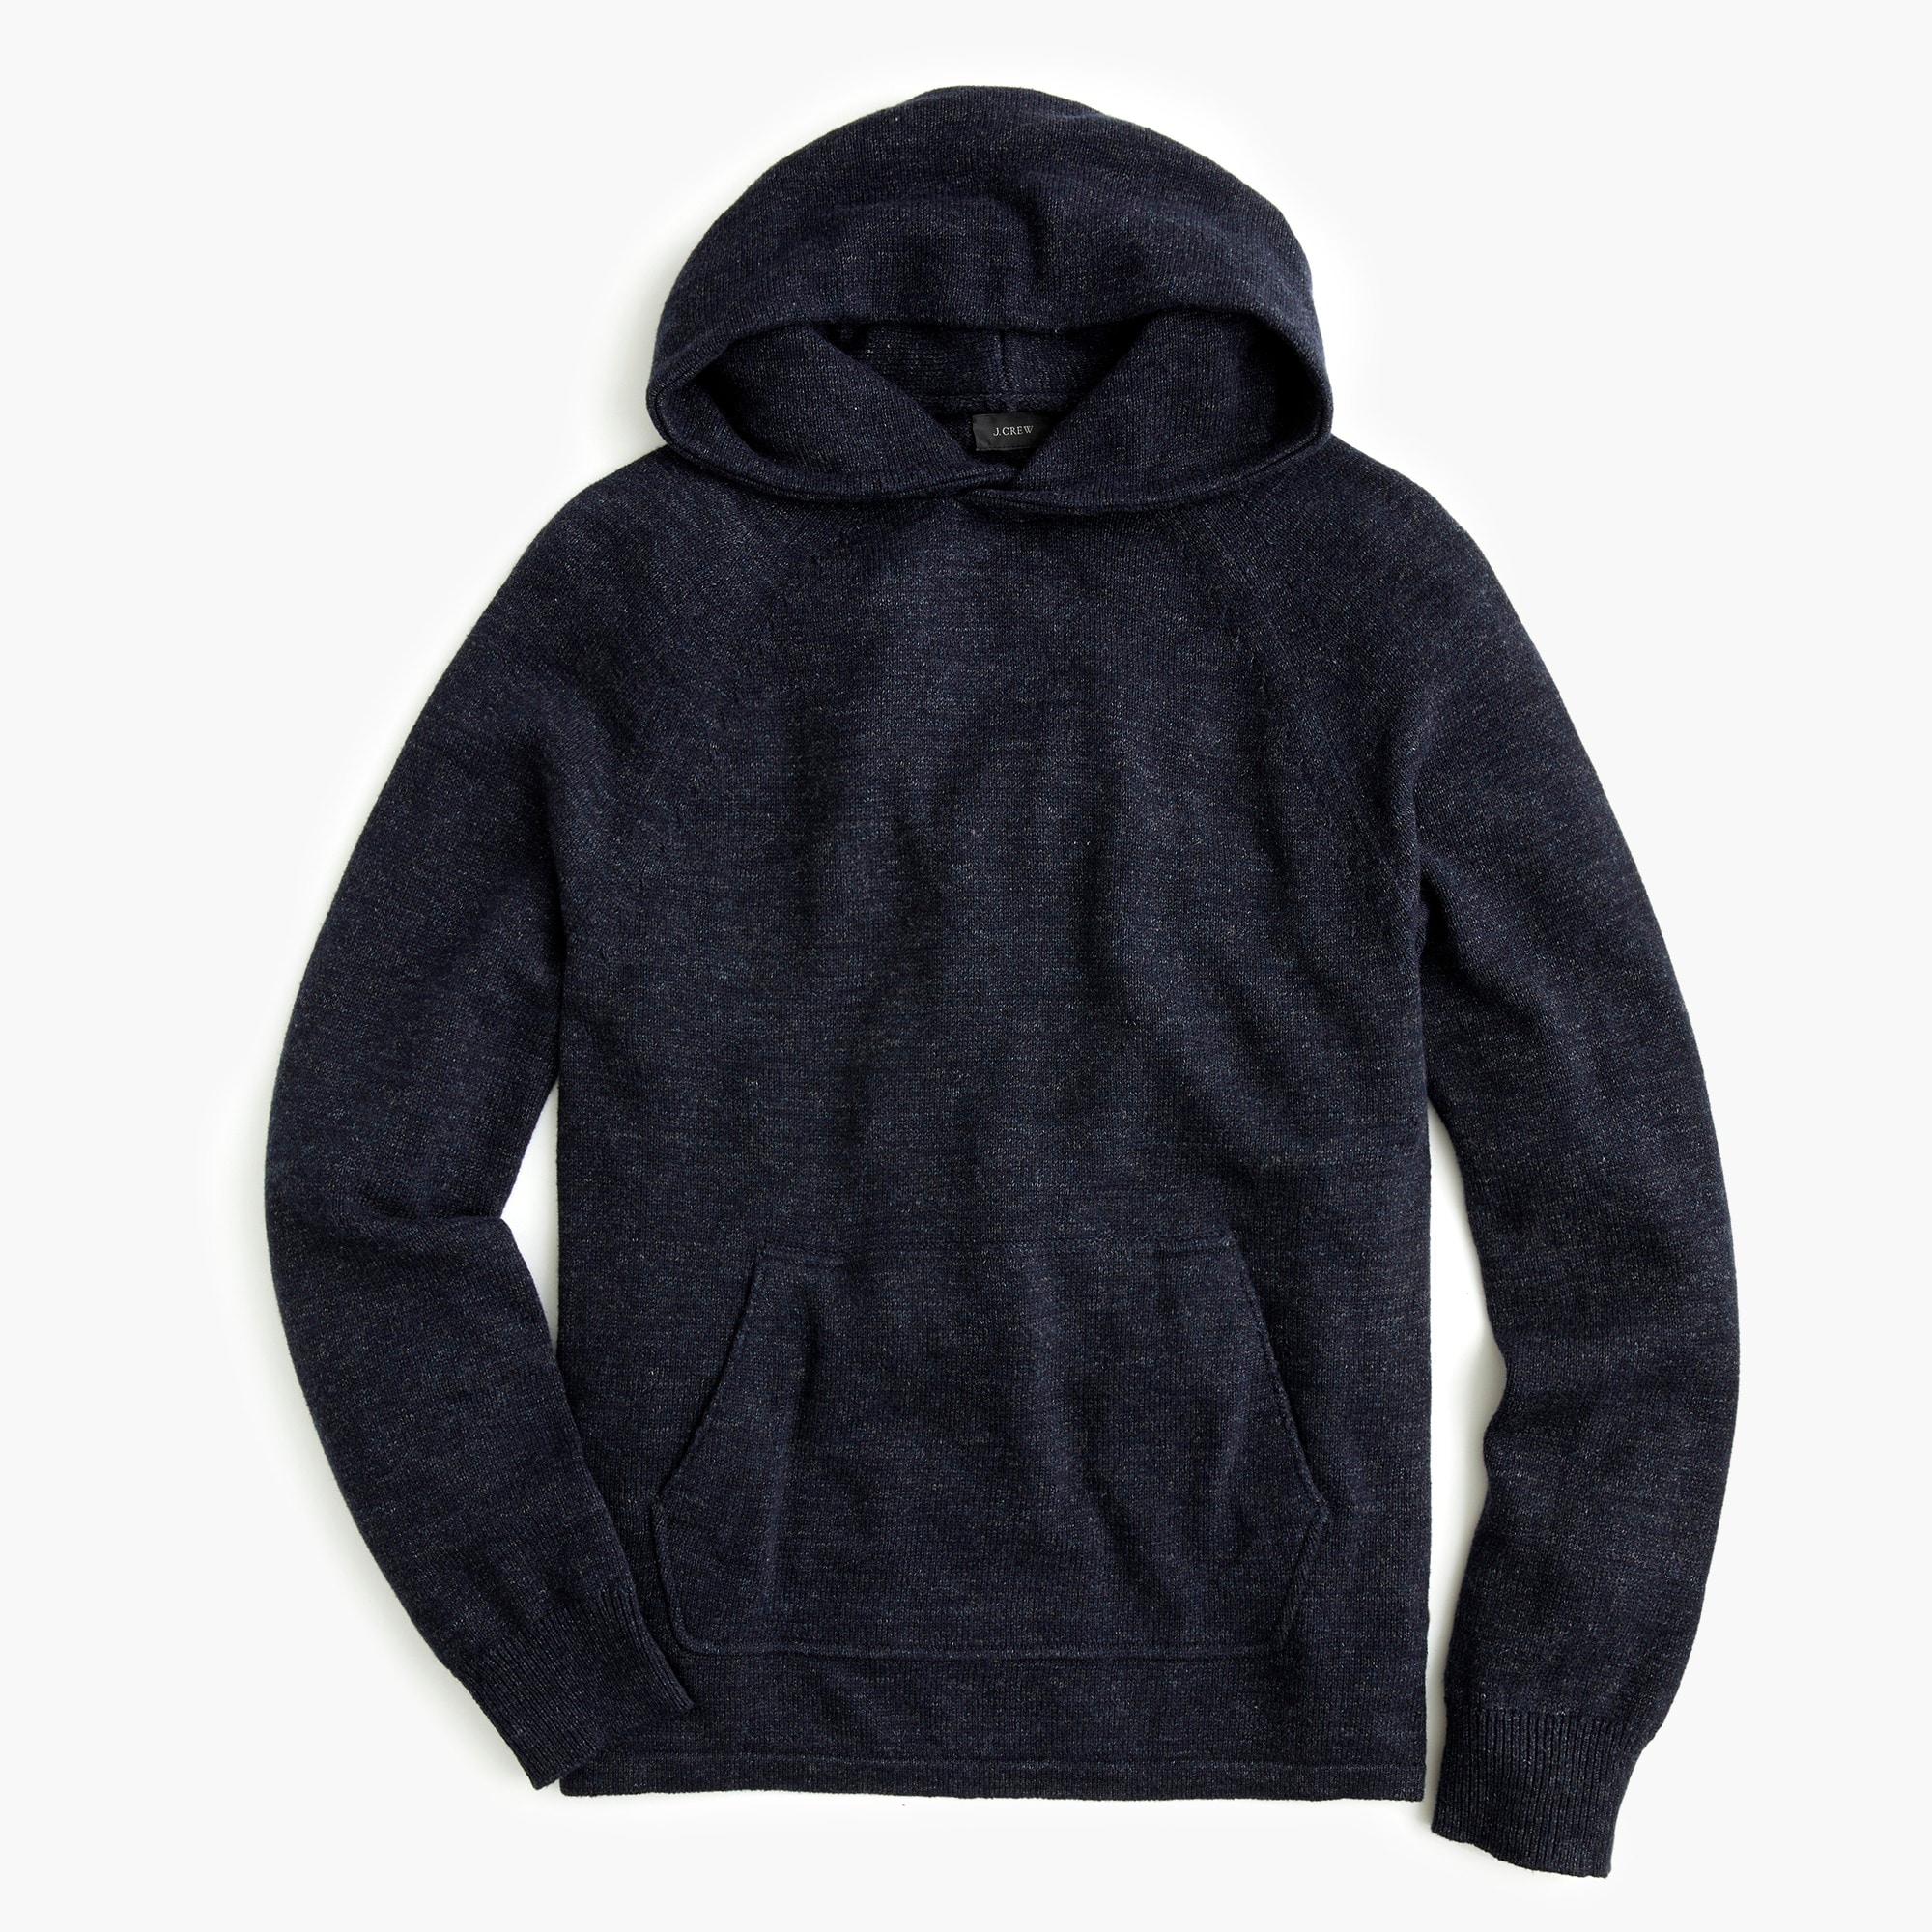 Cotton-wool sweater hoodie